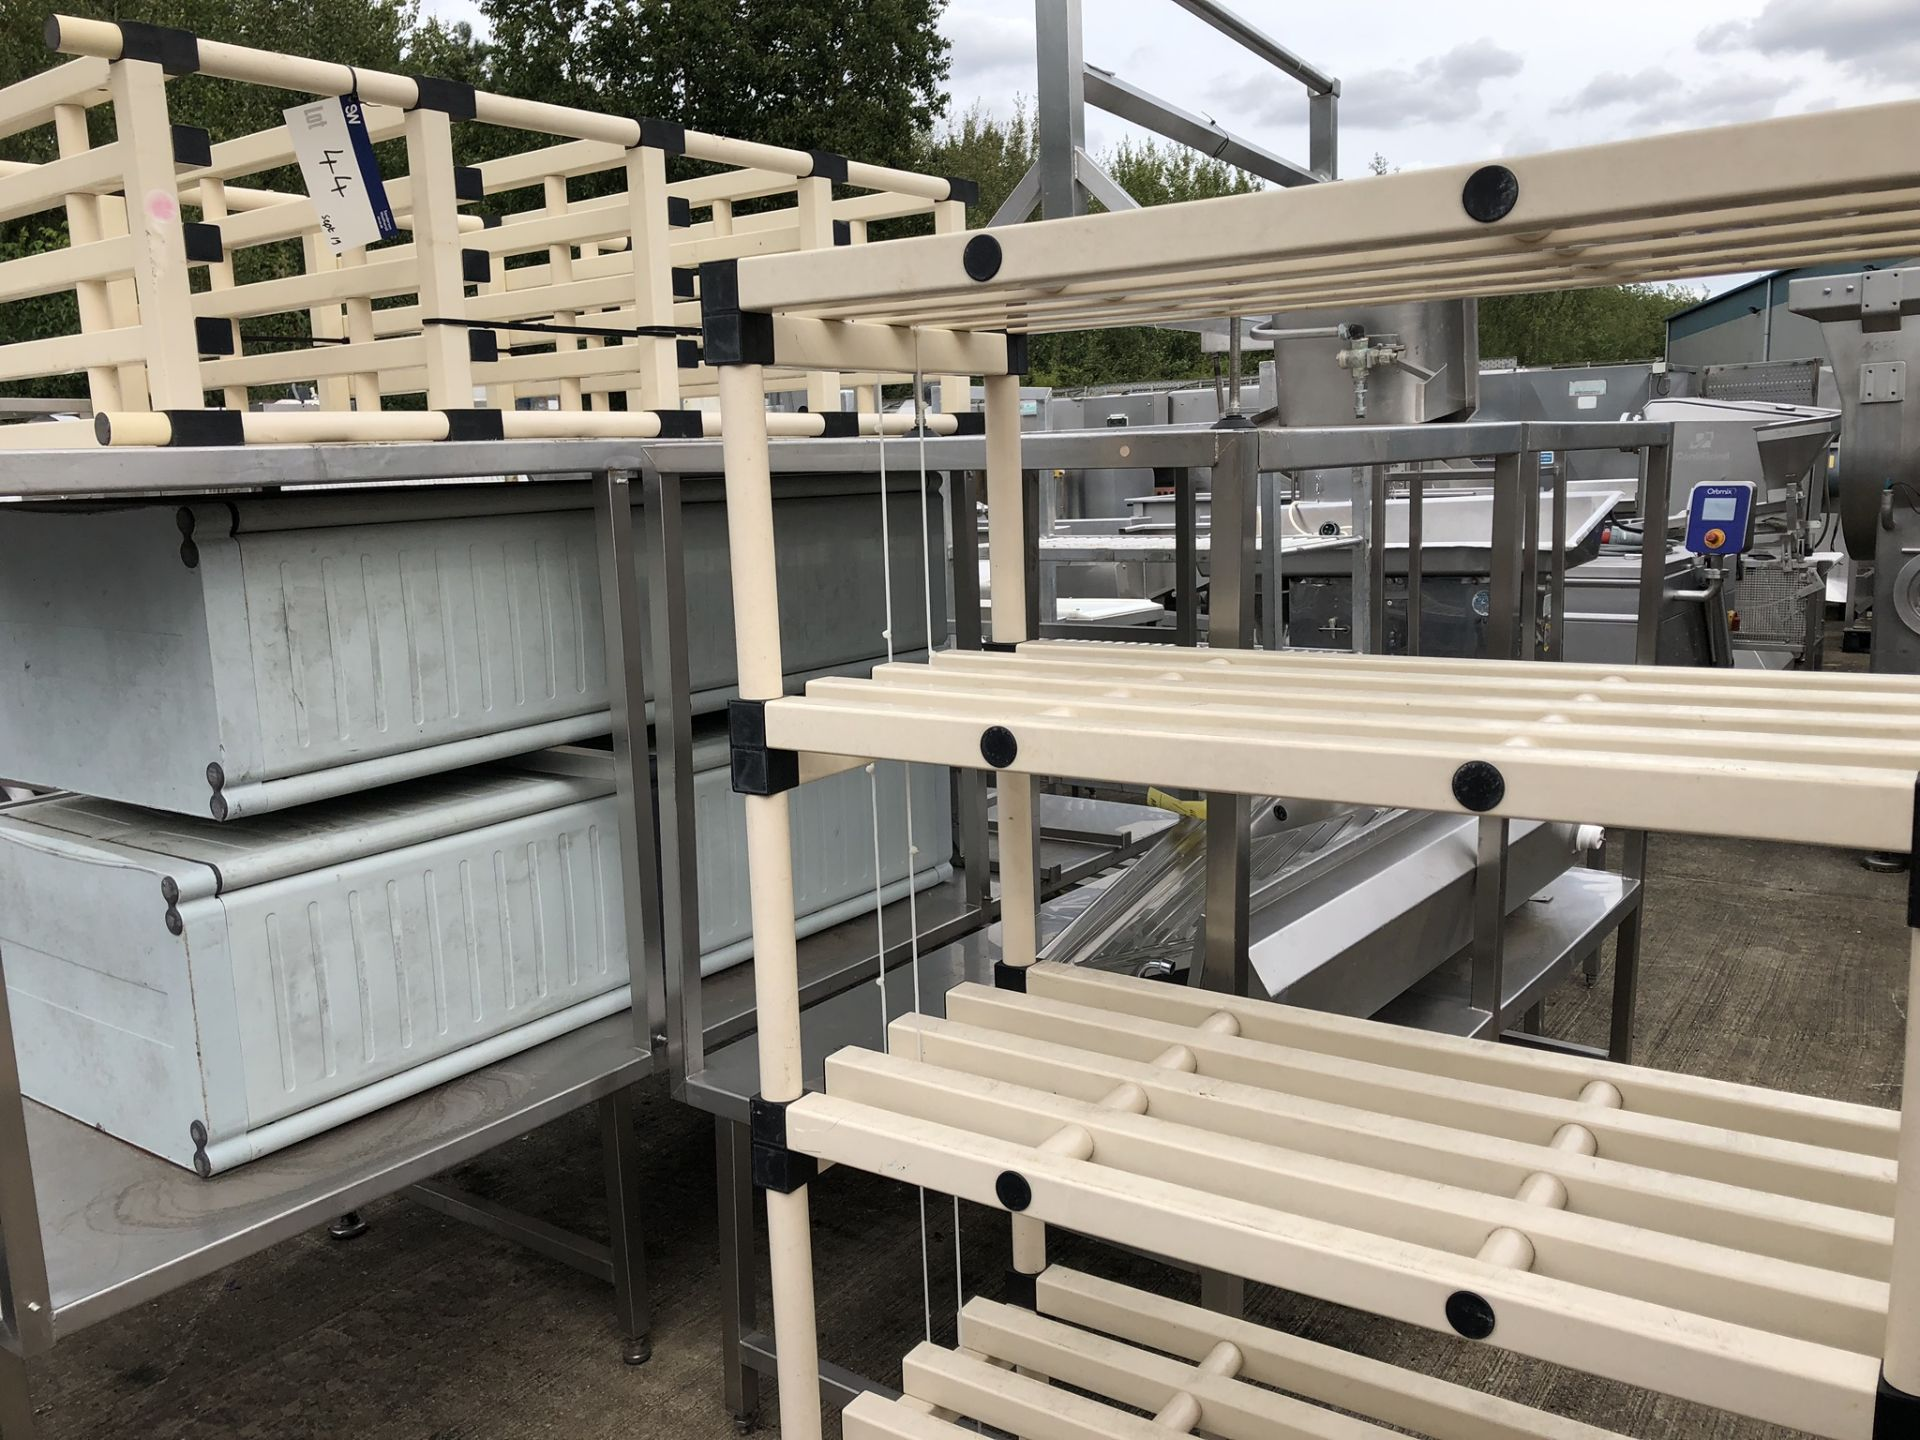 Lotto 44 - Two x Five Shelf Plastic Racks, approx. 1m x 0.5m x 1.7m high, lift out charge - £20